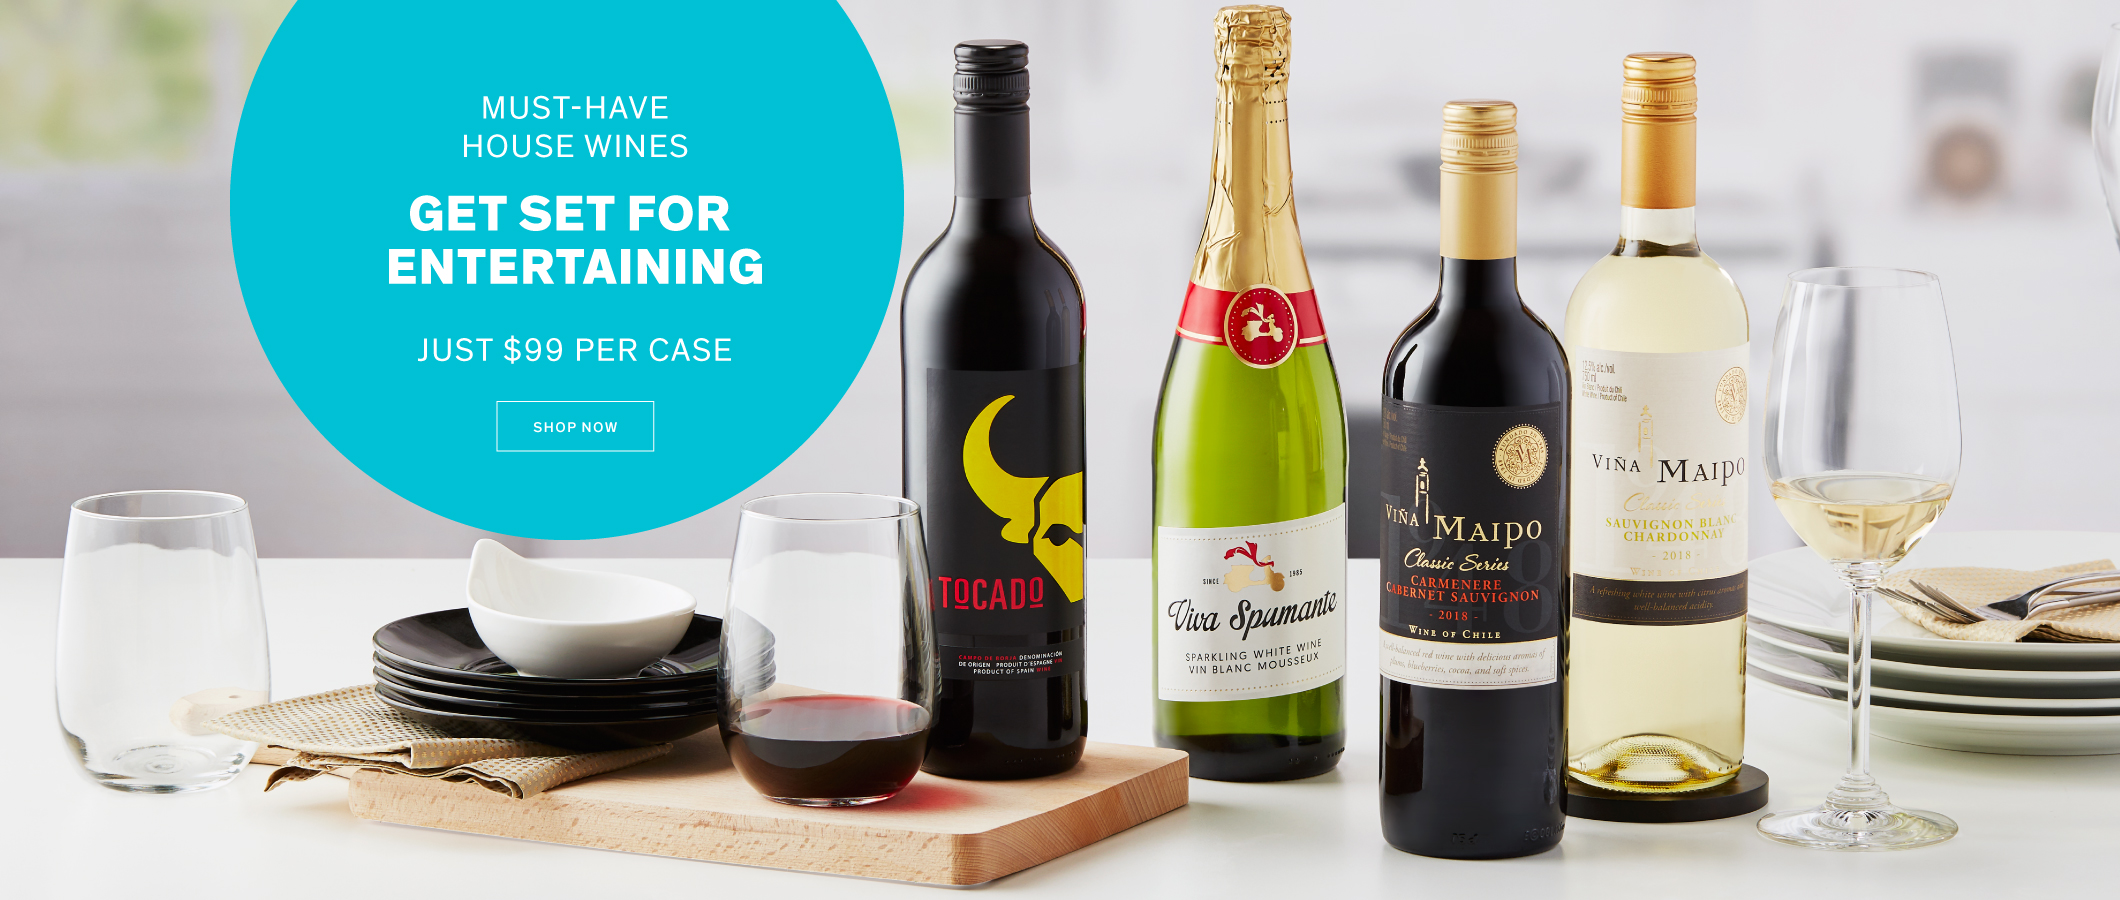 Must-Have House Wines  Get Set for Entertaining — Just $99 per Case. Shop Now